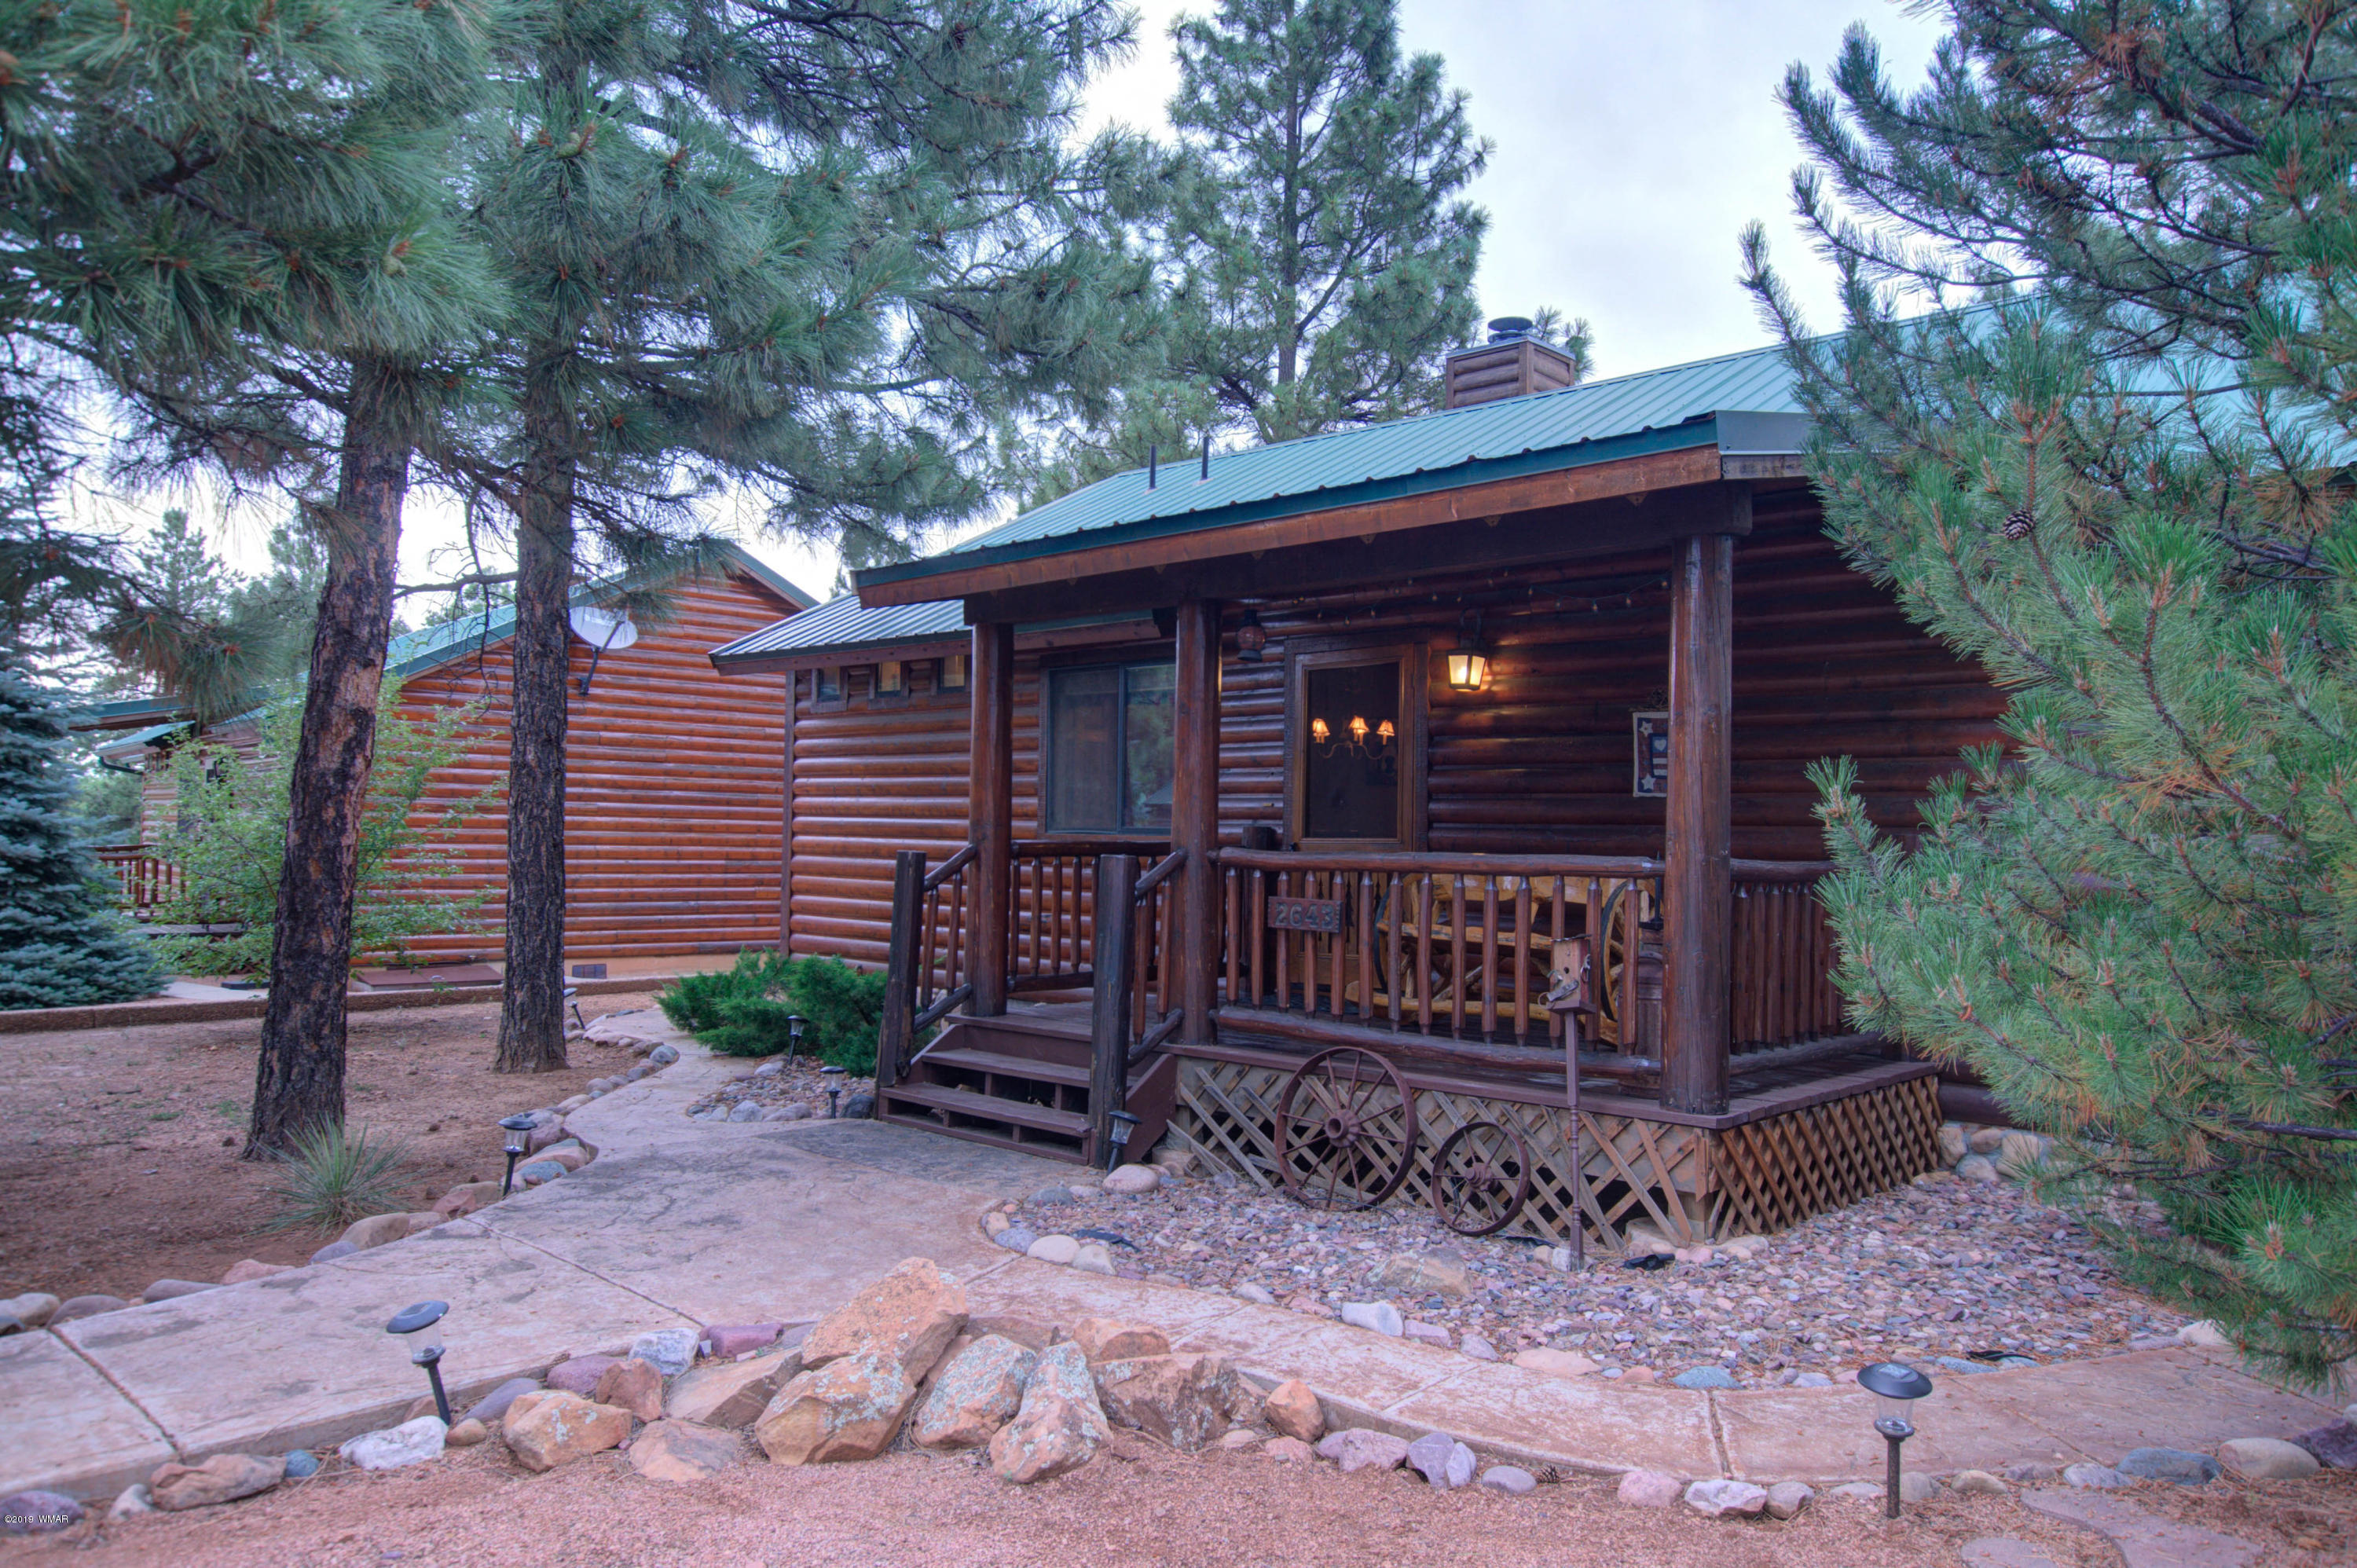 Cabin in the pines! This fully furnished 2 bedroom, 2 bath popular split floor plan Bison Ranch cabin is nestled amongst tall pines.  Charming interior with cozy decorator touches as well as a nicely landscaped yard- stamped concrete walkways and gathering area off the full length rear deck.  Well maintained and never used as a rental.  Bison Ranch amenities include sports courts, kiddie playground, catch and release fishing pond, as well as shopping and dining.